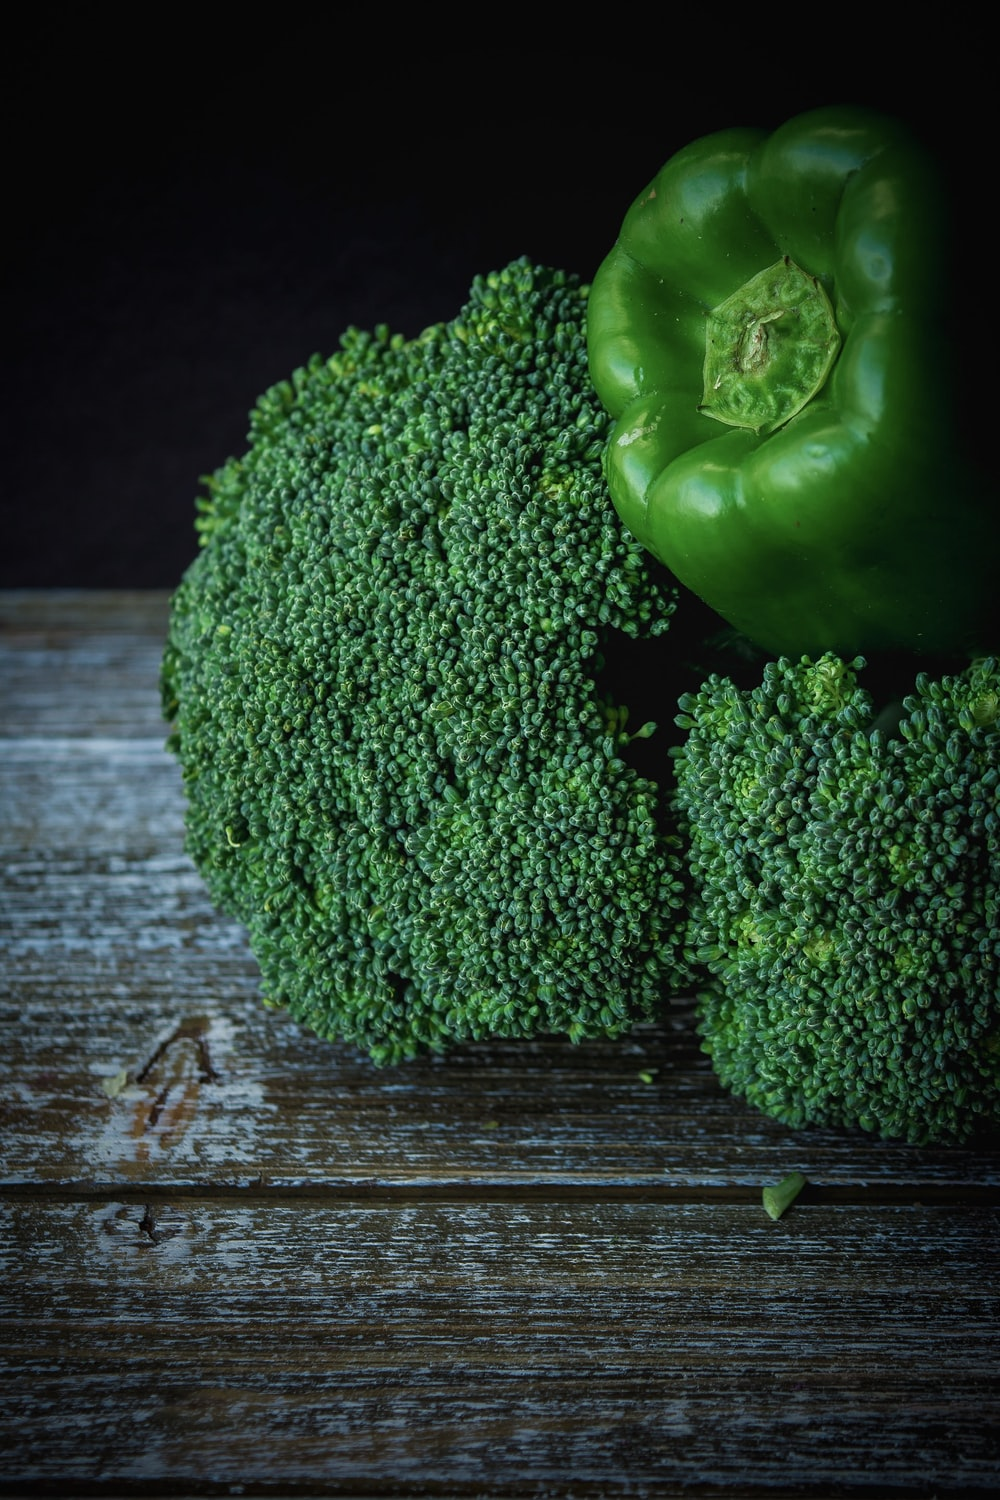 green bell pepper and green broccoli